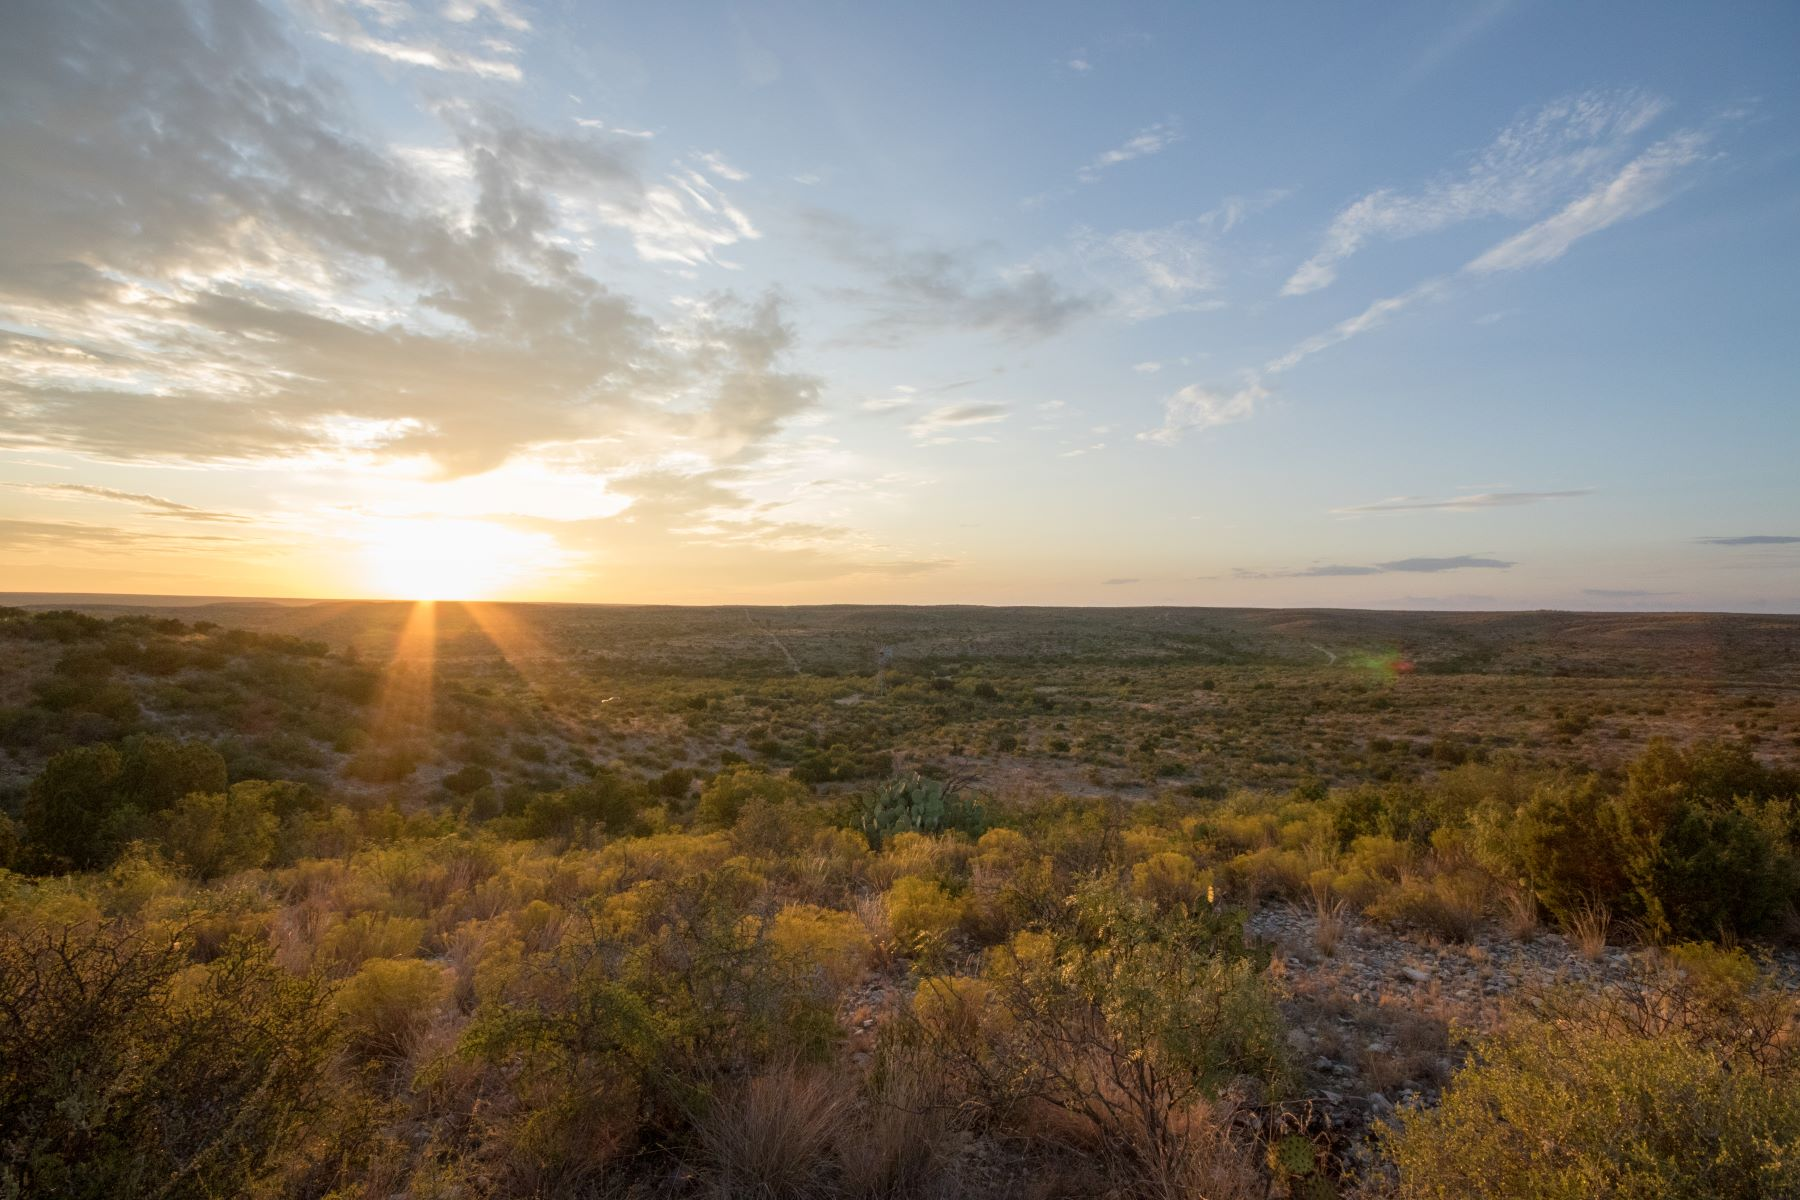 Land for Sale at Langtry Ranch Hartgrove-Winters Rd Langtry, Texas 78871 United States